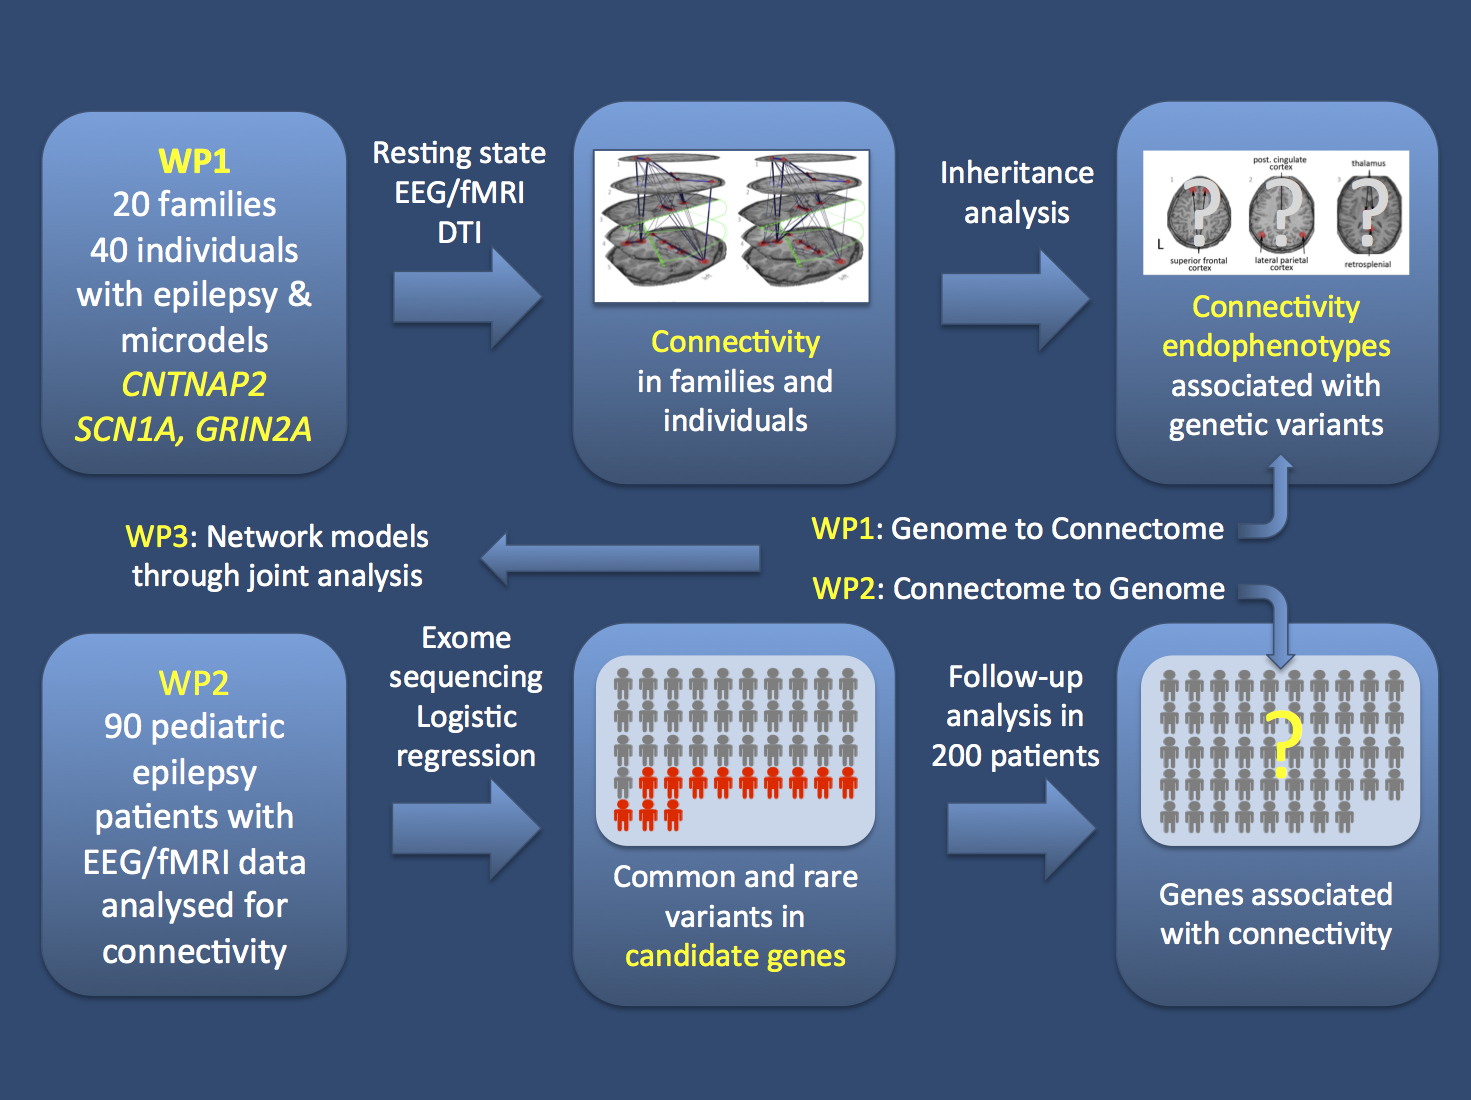 Basically, the aim of our proposal was to push the boundaries by using connectivity measures as quantitative endophenotypes. I personally believe that this is one of the ways to go in epilepsy genetics, given the phenotypic range we see with some of the variants we investigate.